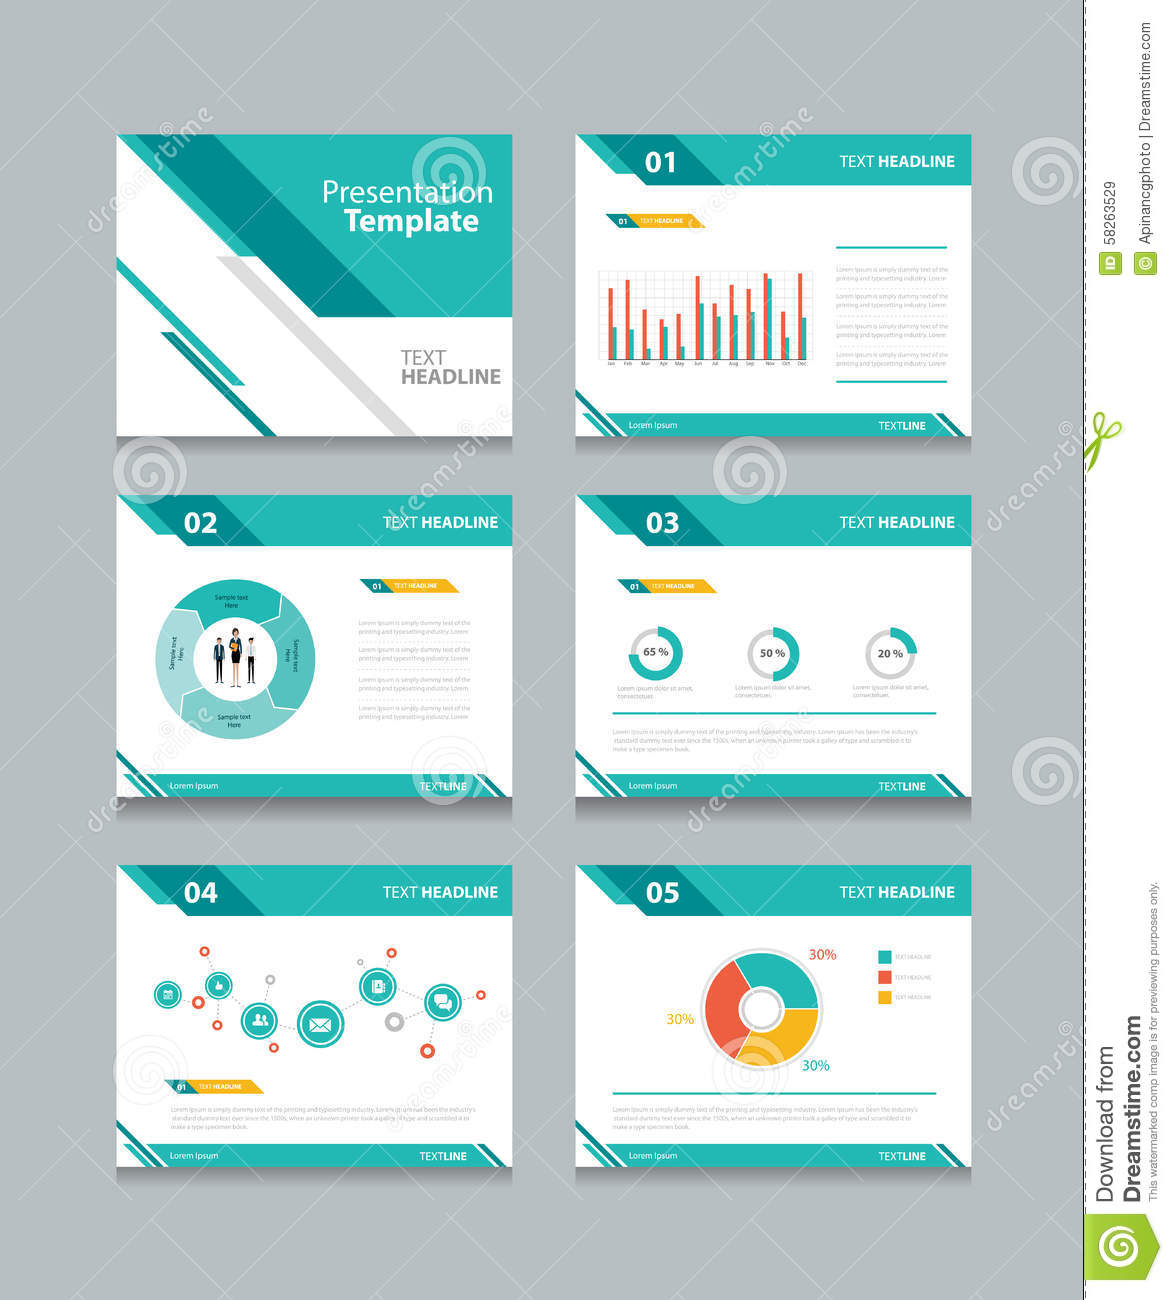 Business presentation template setpowerpoint template design download business presentation template setpowerpoint template design backgrounds stock vector illustration of business toneelgroepblik Image collections